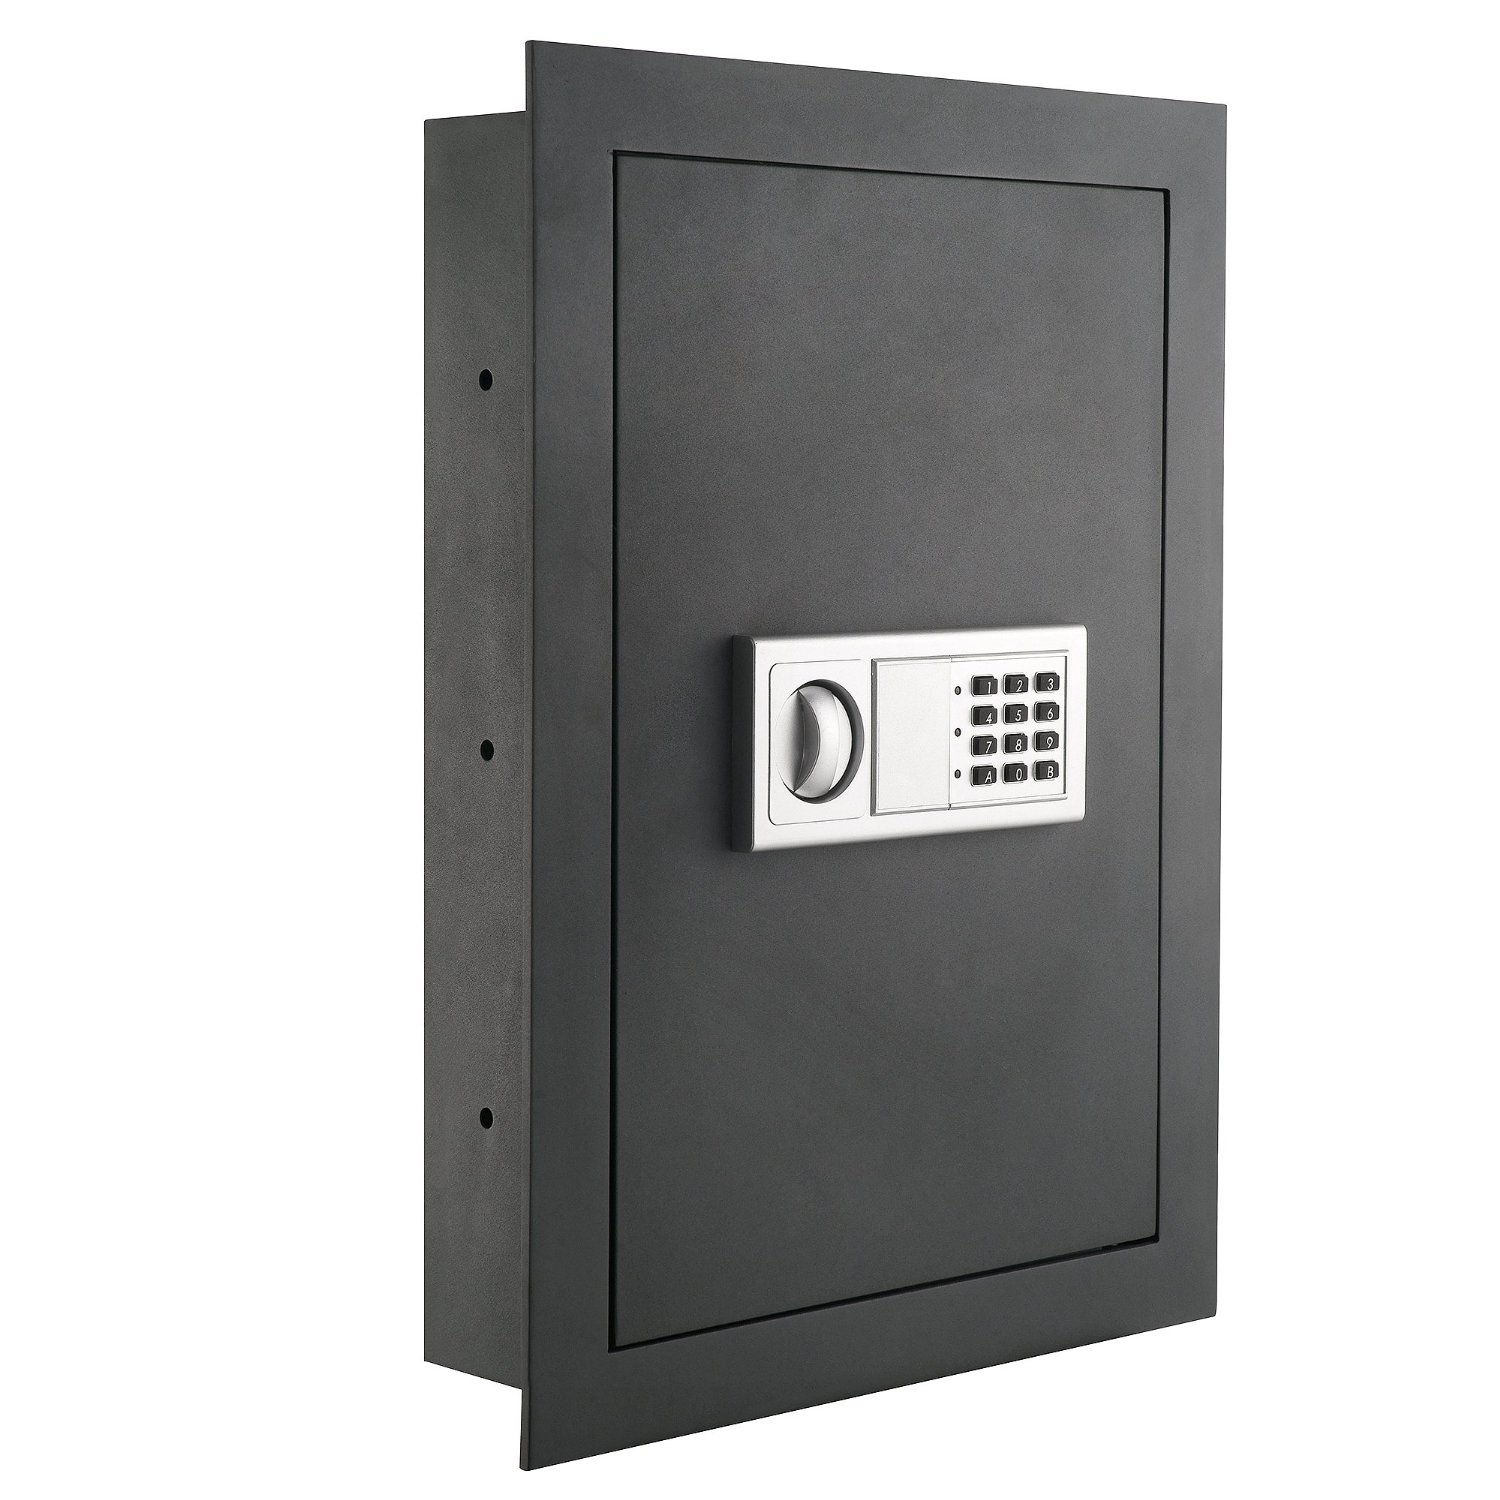 picture of Paragon 7725 Flat Superior Electronic Hidden Wall Safe for Large Jewelry or Small Handgun Security. one of the top rated hidden gun safes